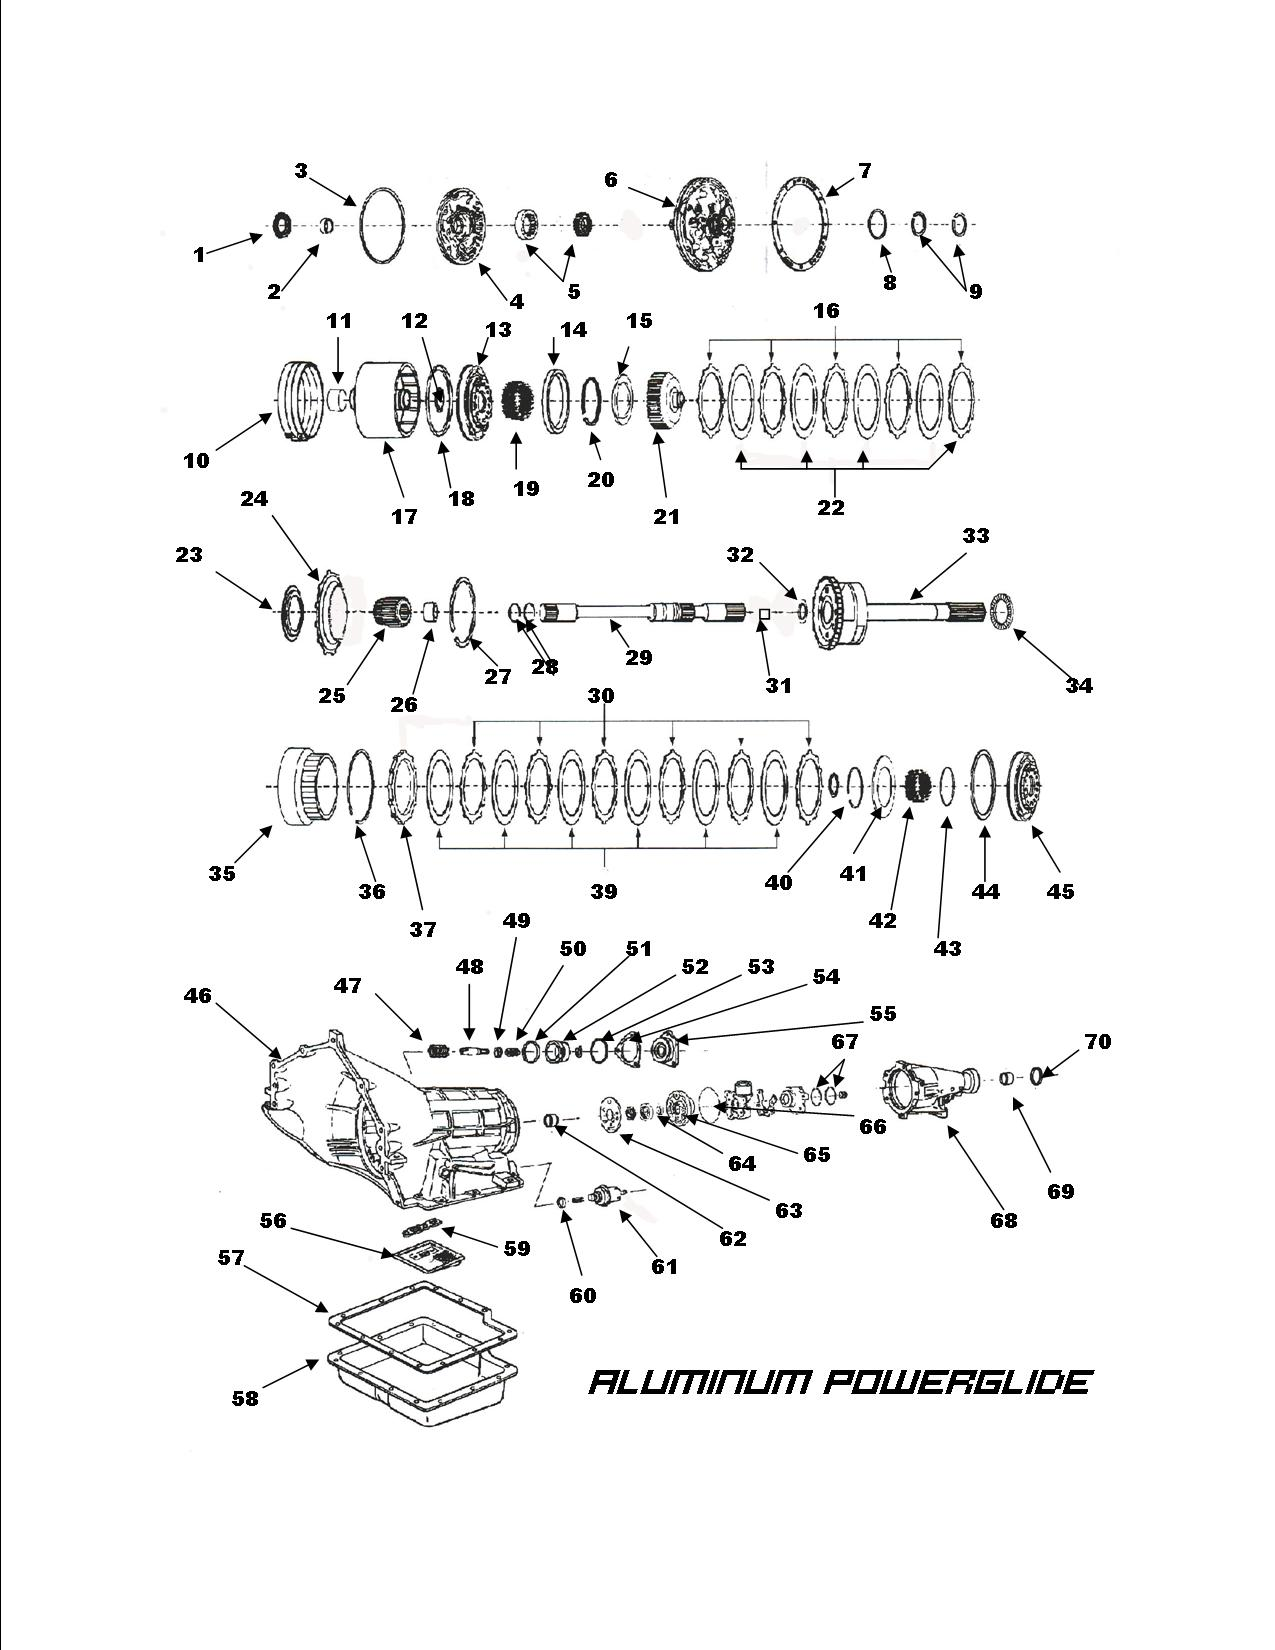 hight resolution of power glide transmission exploded view